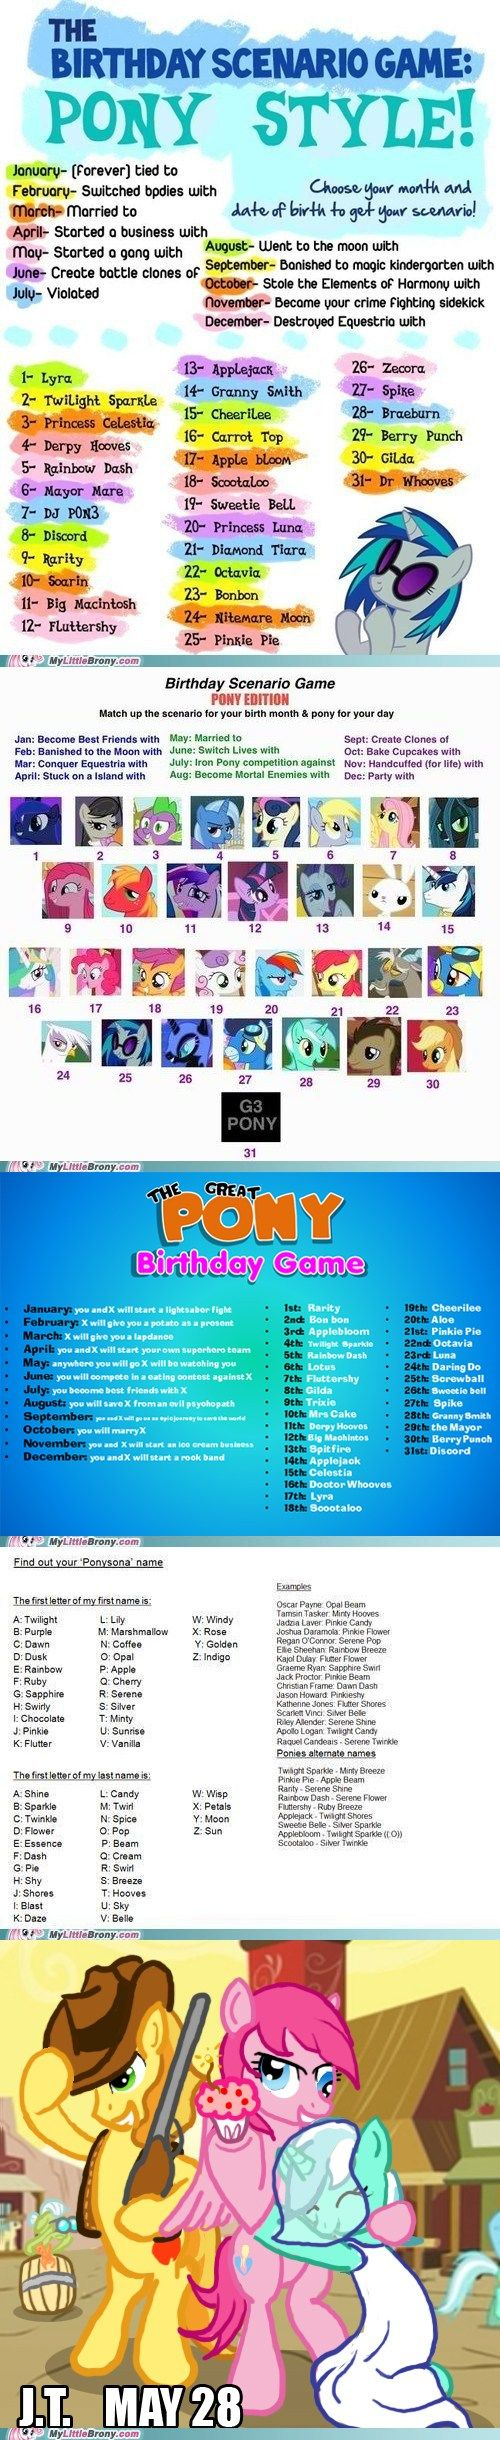 Tied forever with Apple bloom, become best friends with Pinkie pie, start a lightsaber fight with Lyra, and my pony name is Marshmallow wisp